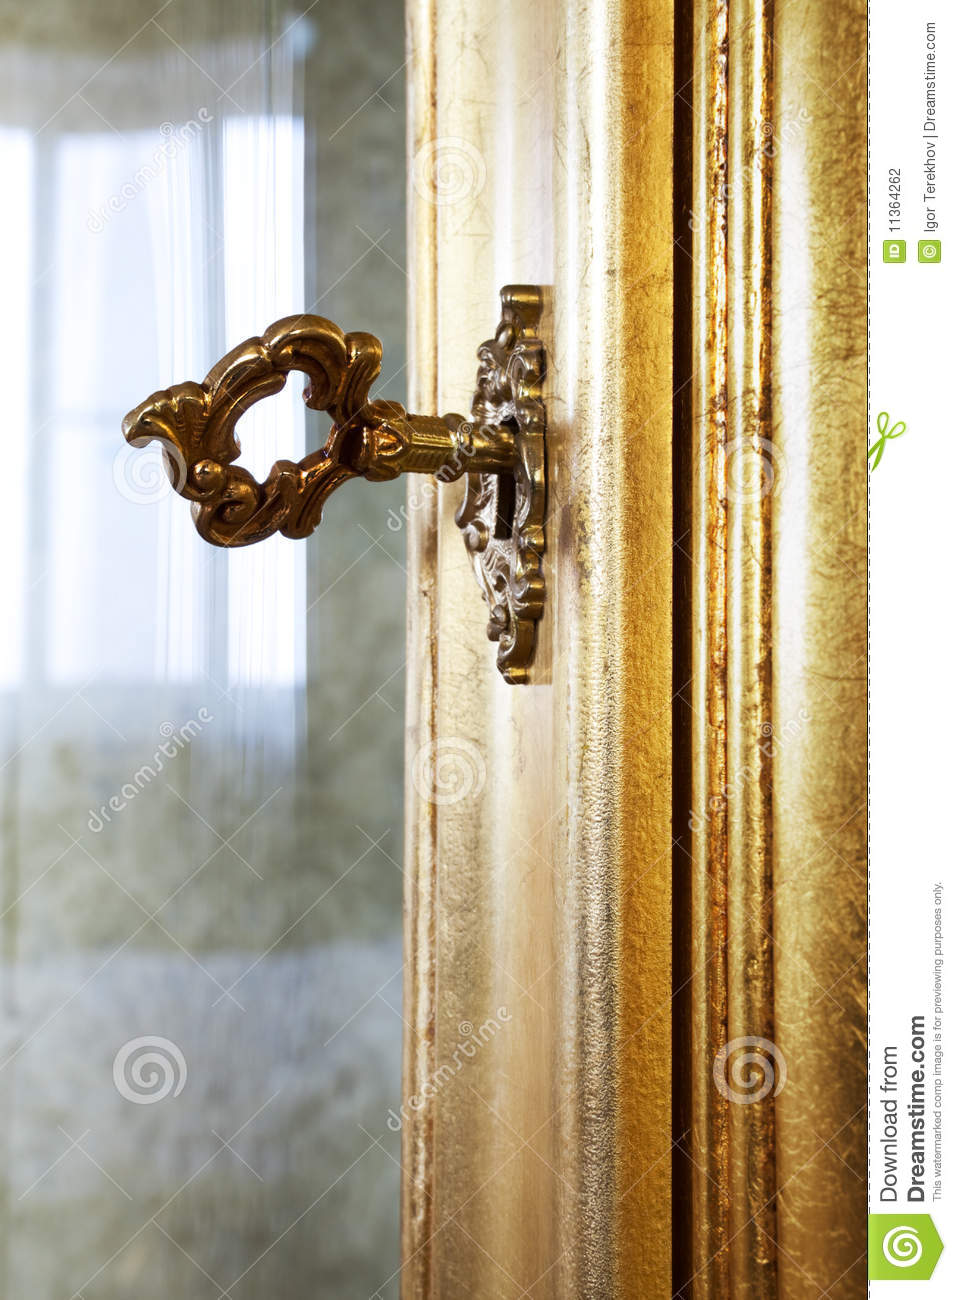 Golden Key Stock Photo Image Of Ornate Home Furniture